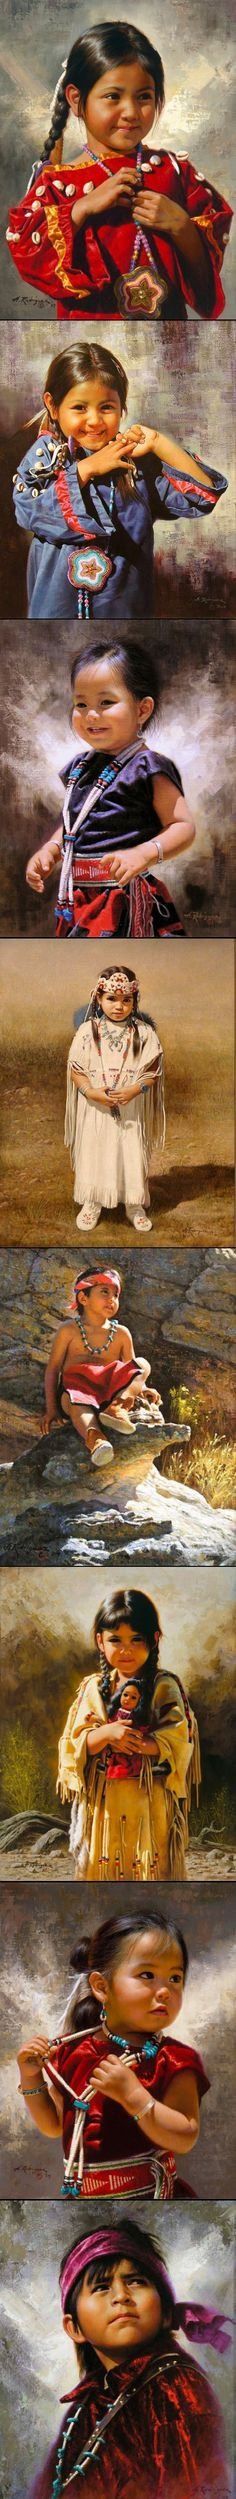 "The beautiful eyes of the American Indian children in the oil paintings of Alfredo Rodriguez (1954, American Painter) § ""Alfredo Rodriguez (1954, American)"" by Marco from I am a Child ~ children in art history (http://iamachild.wordpress.com). Blog posted on May 24, 2011.   §   Collage created via http://pinthemall.net"